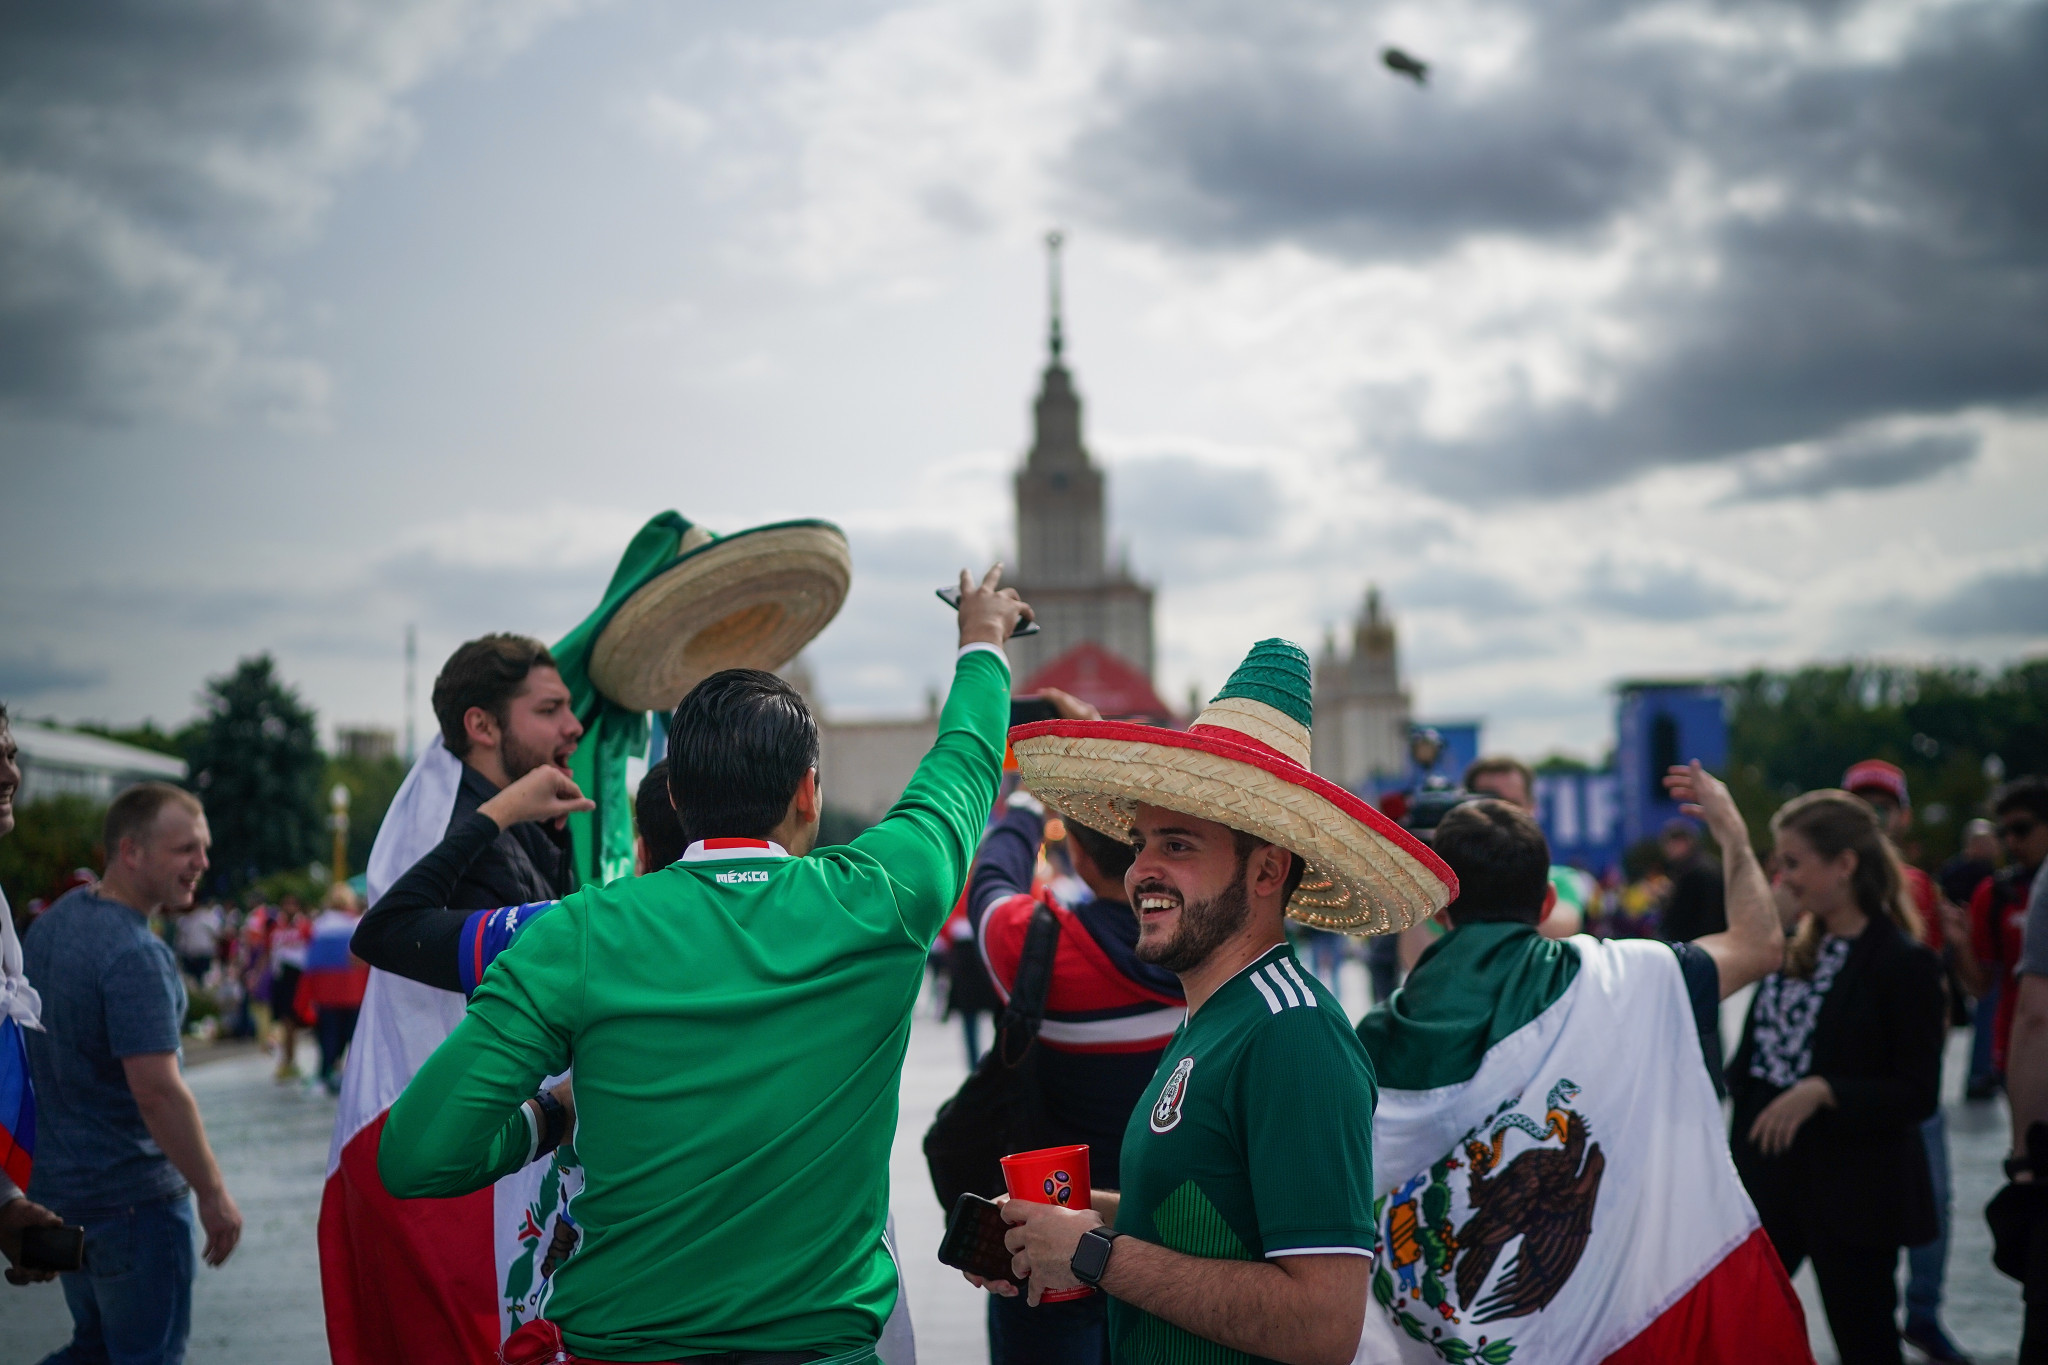 At least seven people, including Mexican World Cup fans, were injured in the crash ©Getty Images